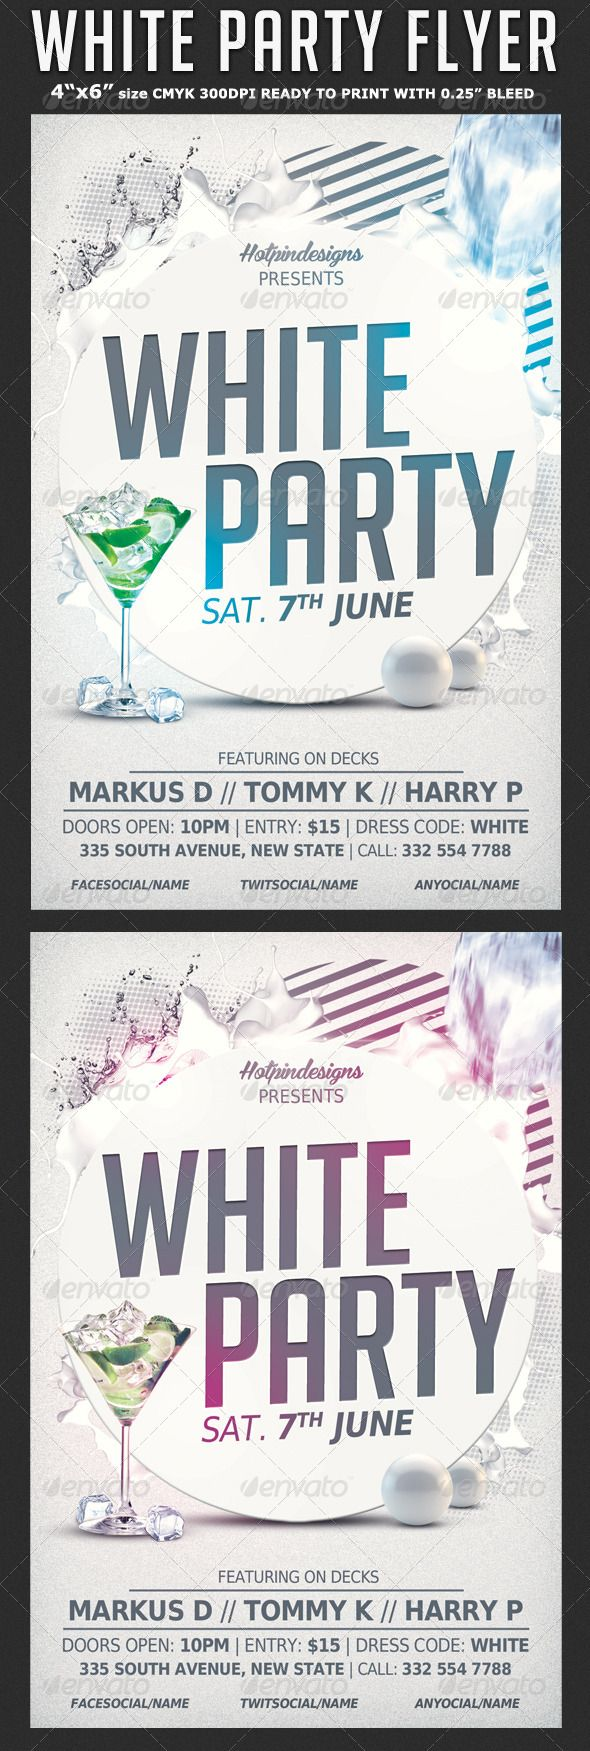 81 best Club Flyer Templates images on Pinterest | Design posters ...